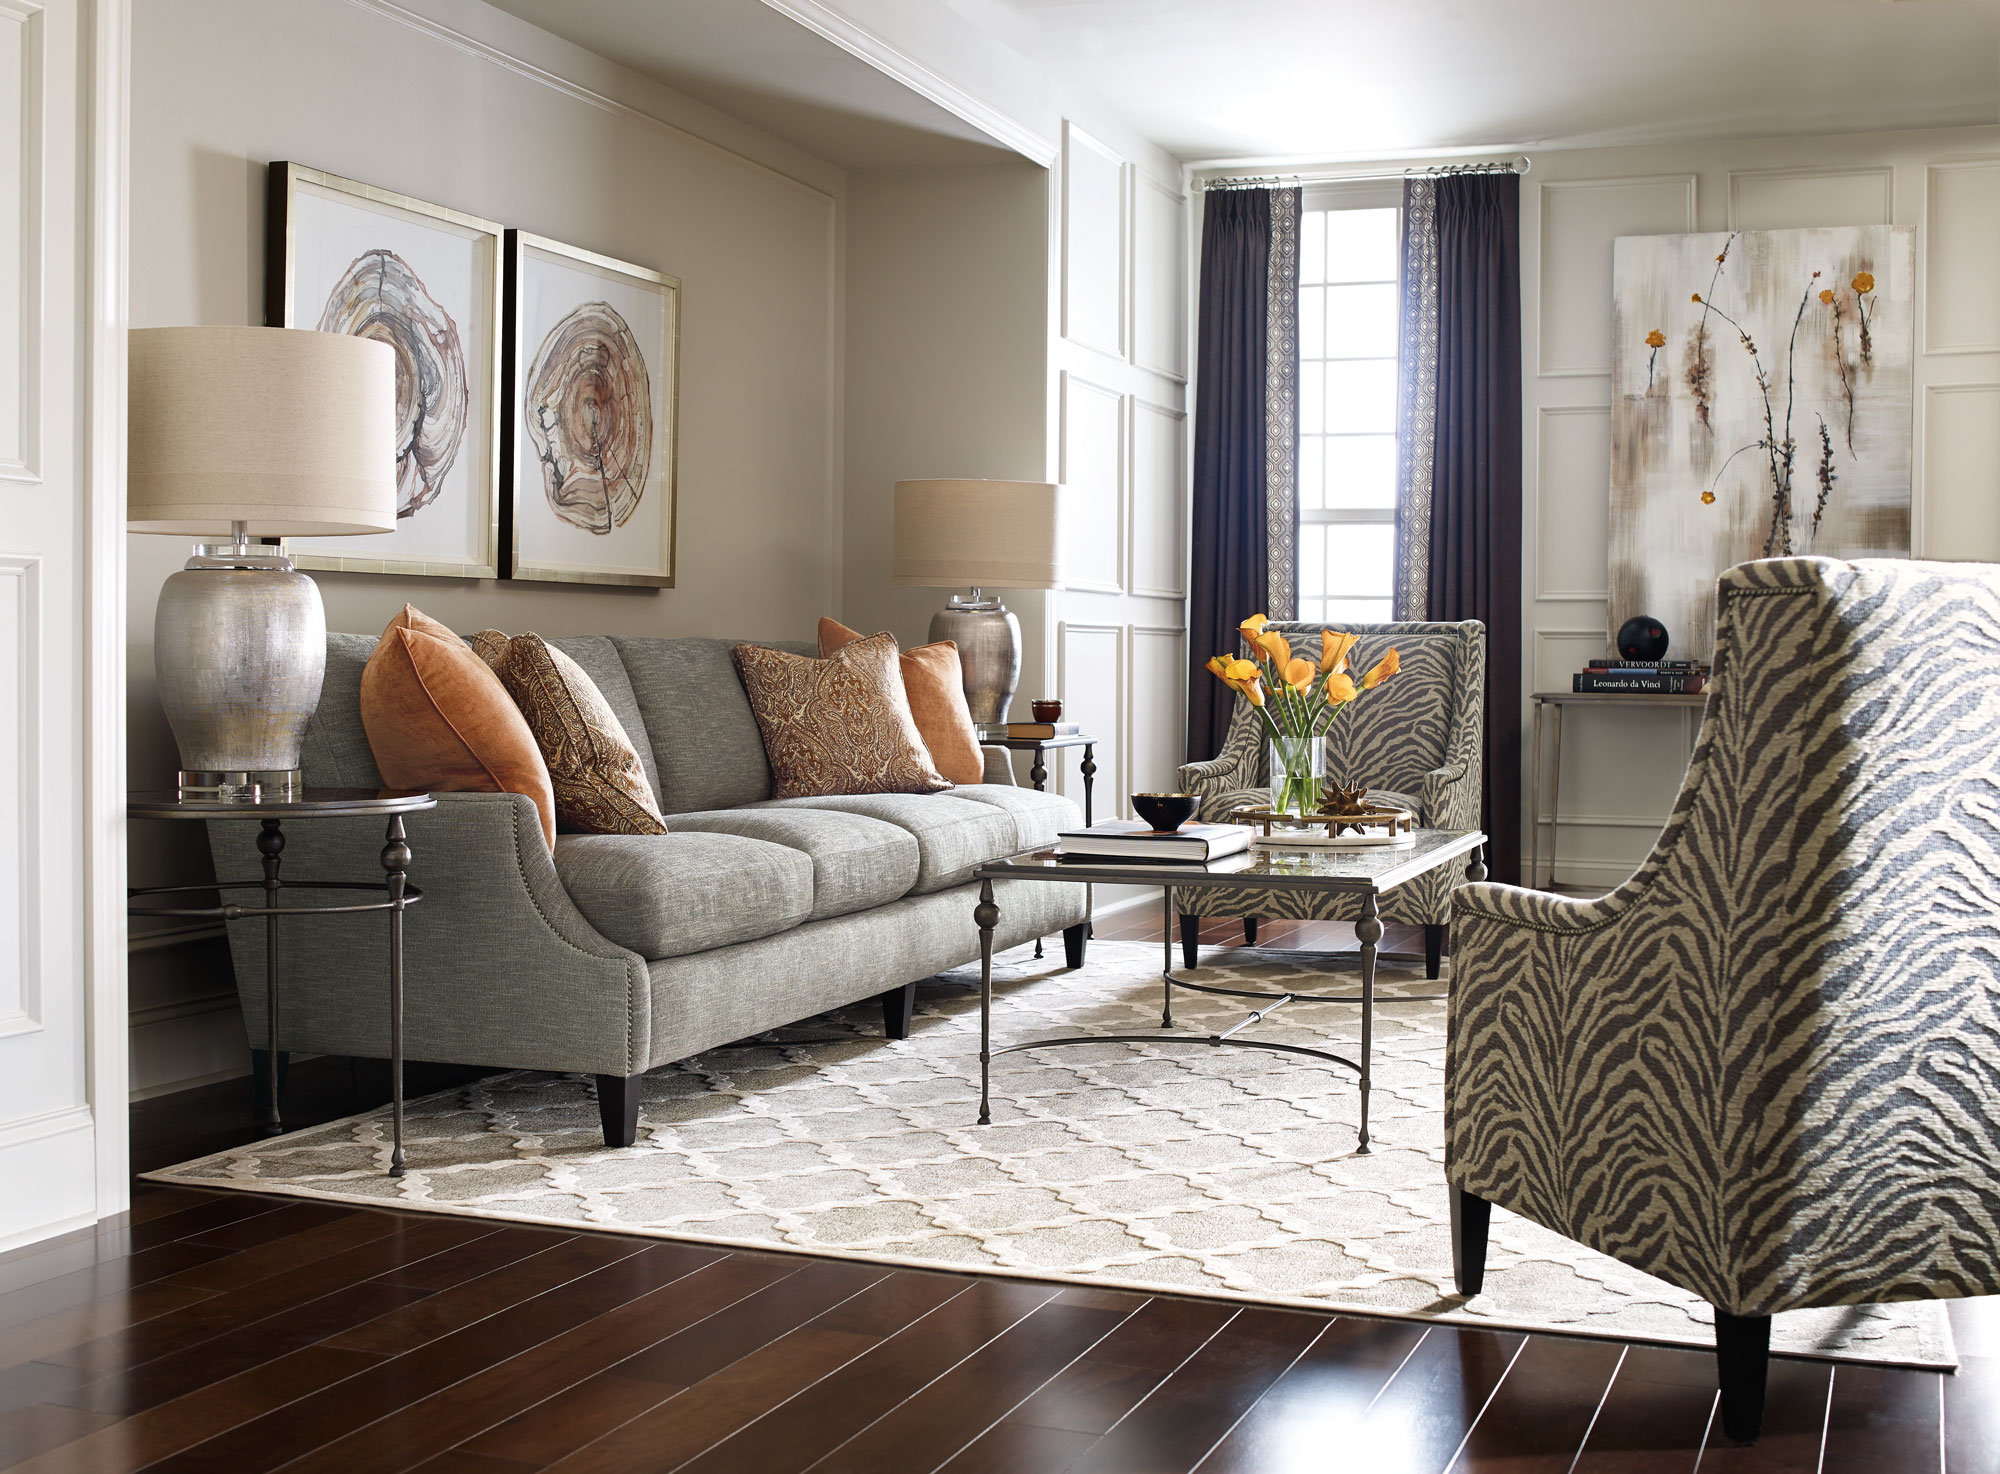 bernhardt living room furniture small with tv in corner tristan newland crawford mindy